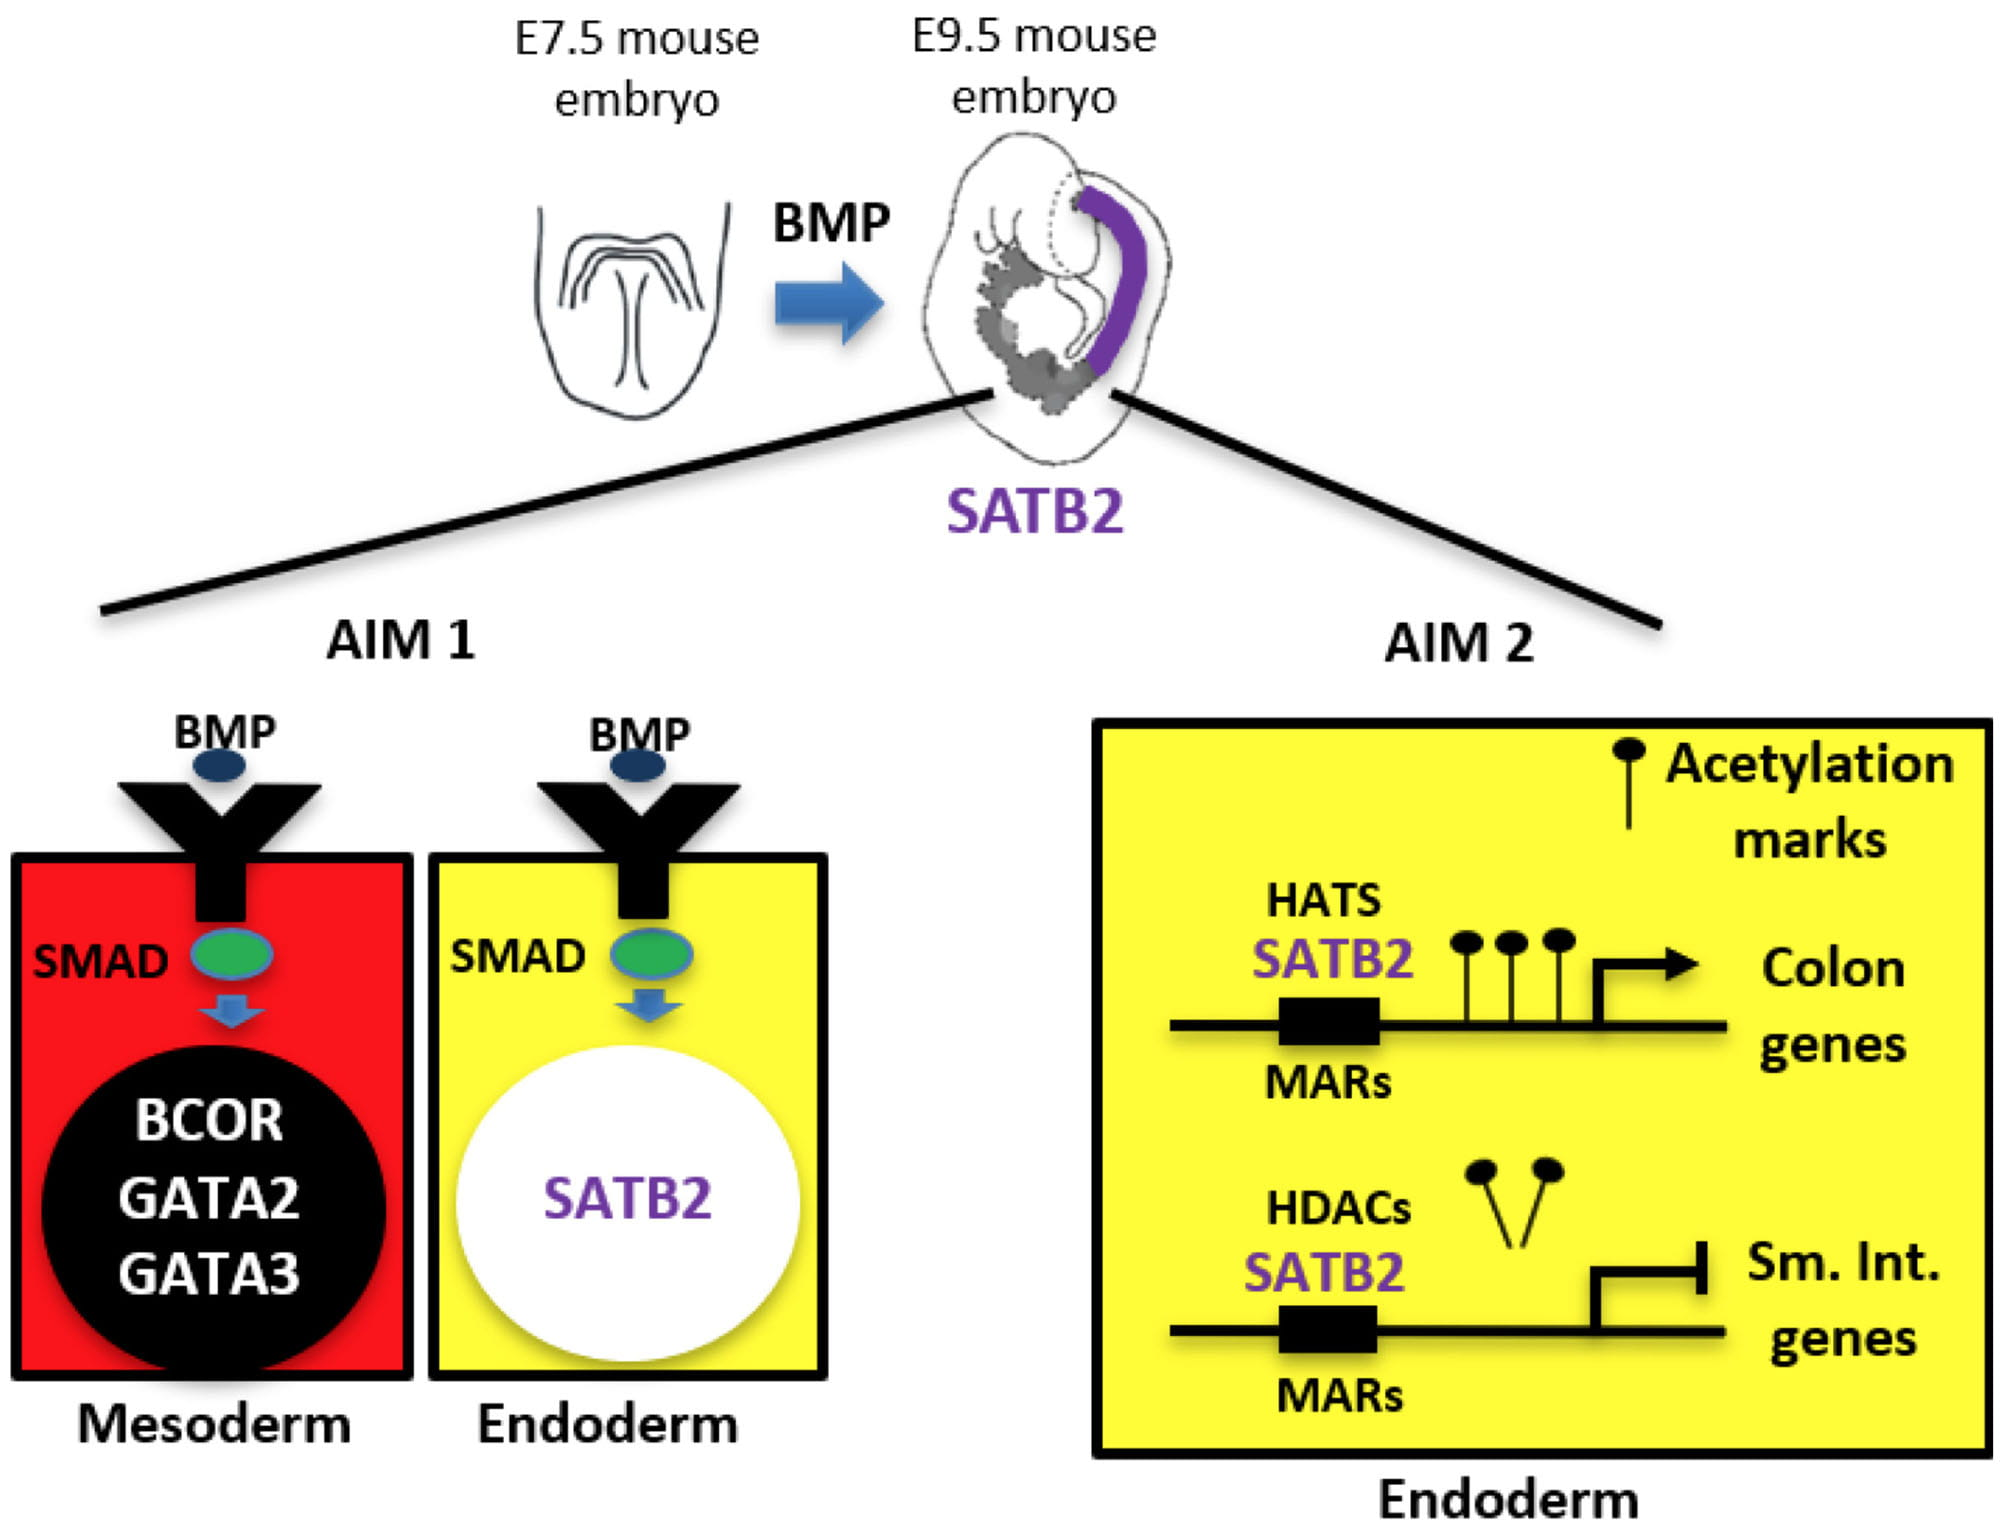 Working hypothesis for research in the Munera lab investigating the role of SMAD1 and SATB2 in colon patterning